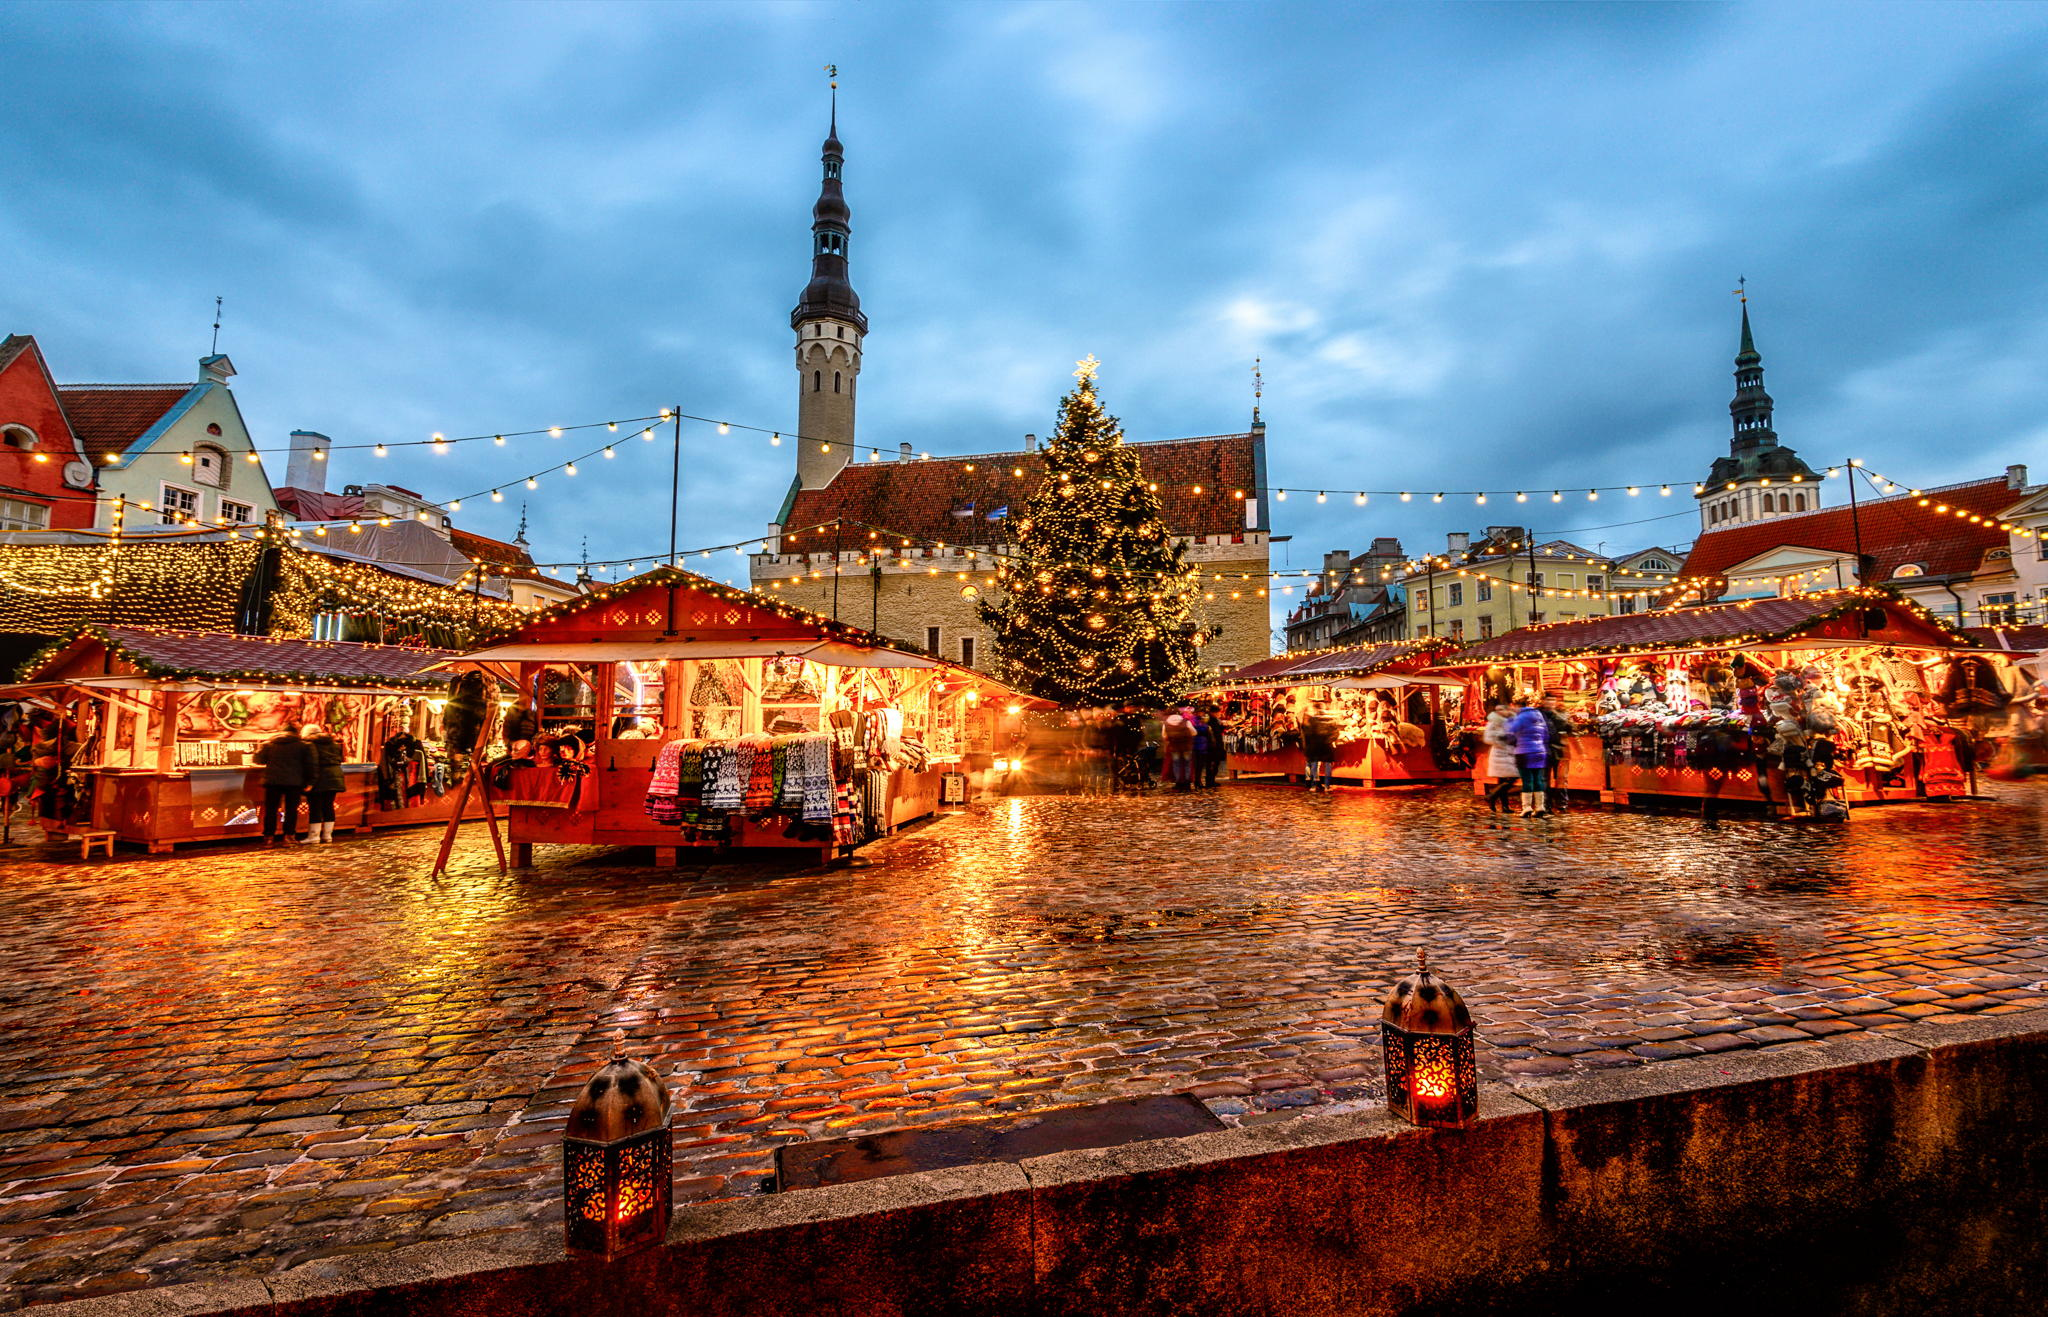 Old Town Of Tallinn (Christmas market), Estonia